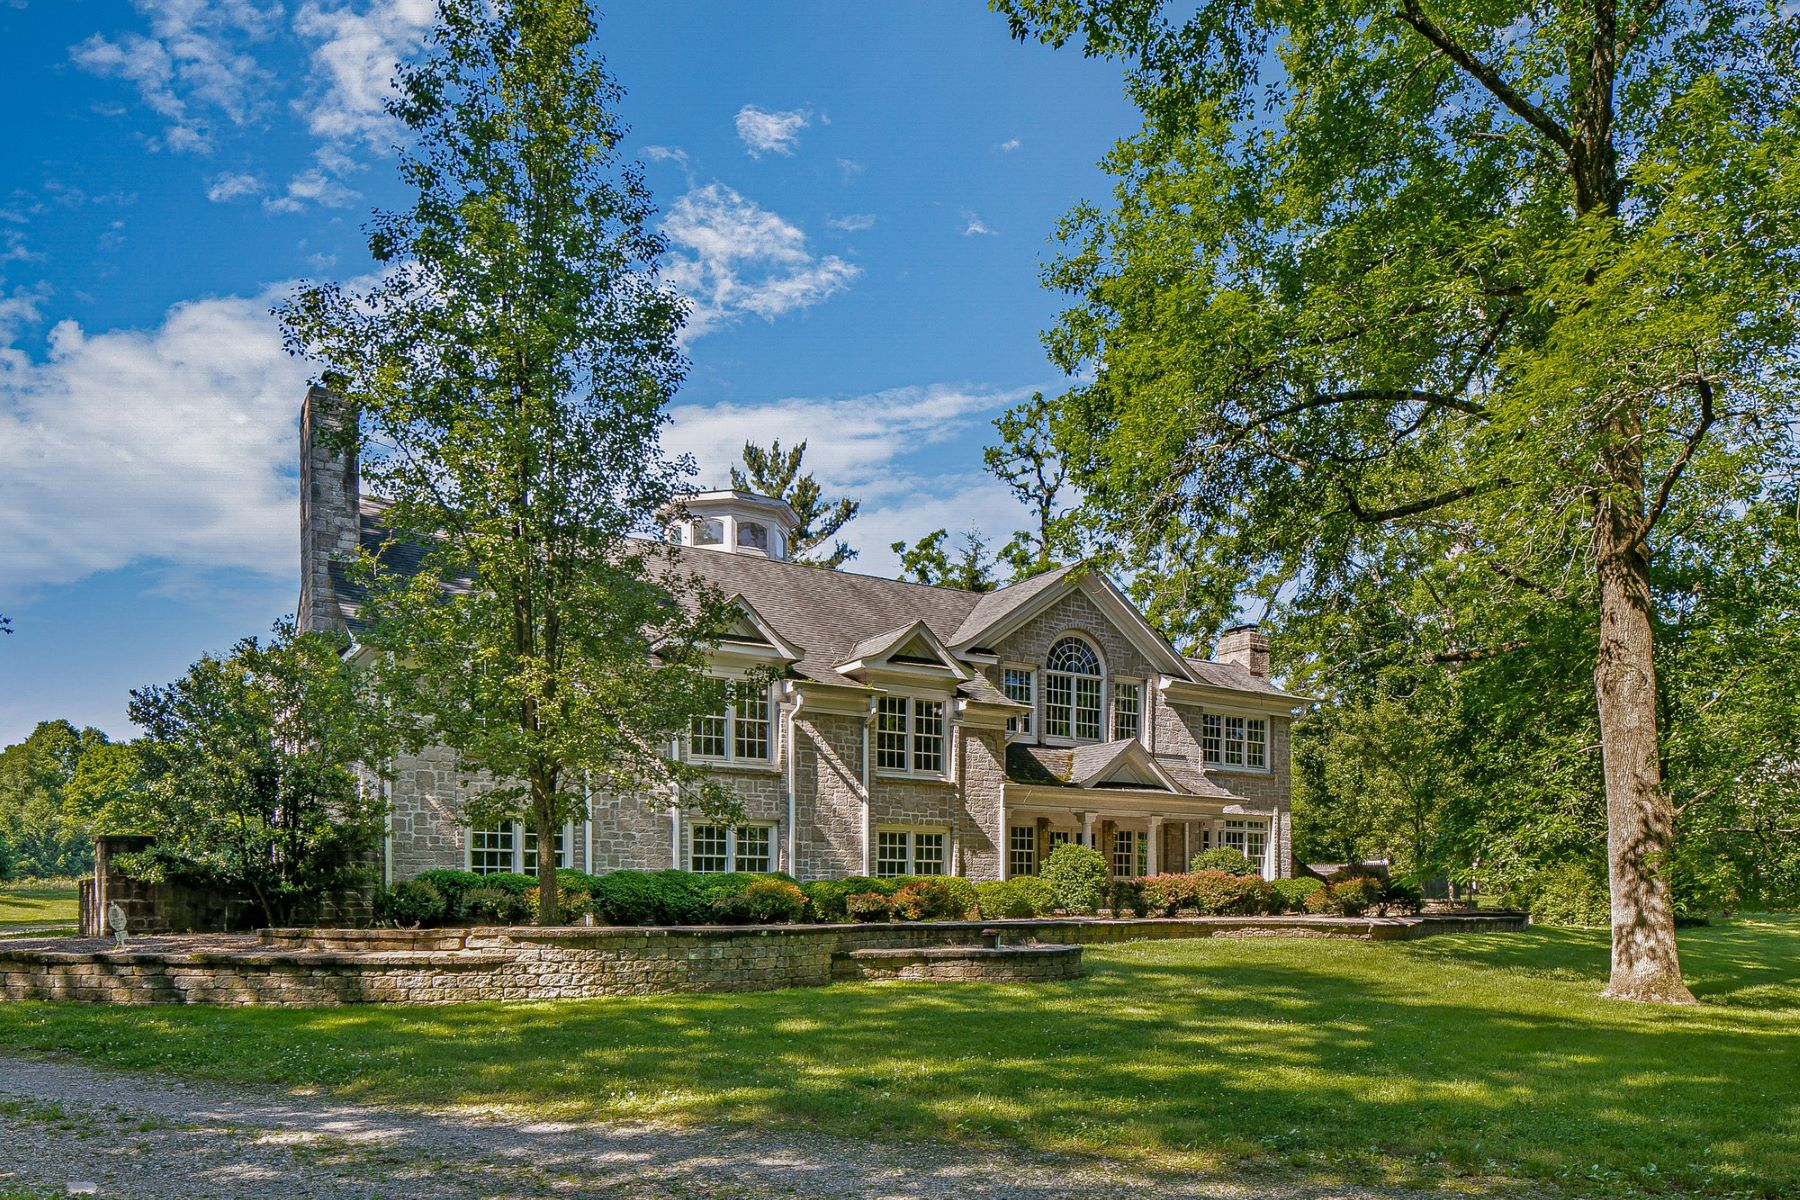 Single Family Homes for Sale at Charming Custom Home 156 River Road, Franklin Township, New Jersey 08801 United States